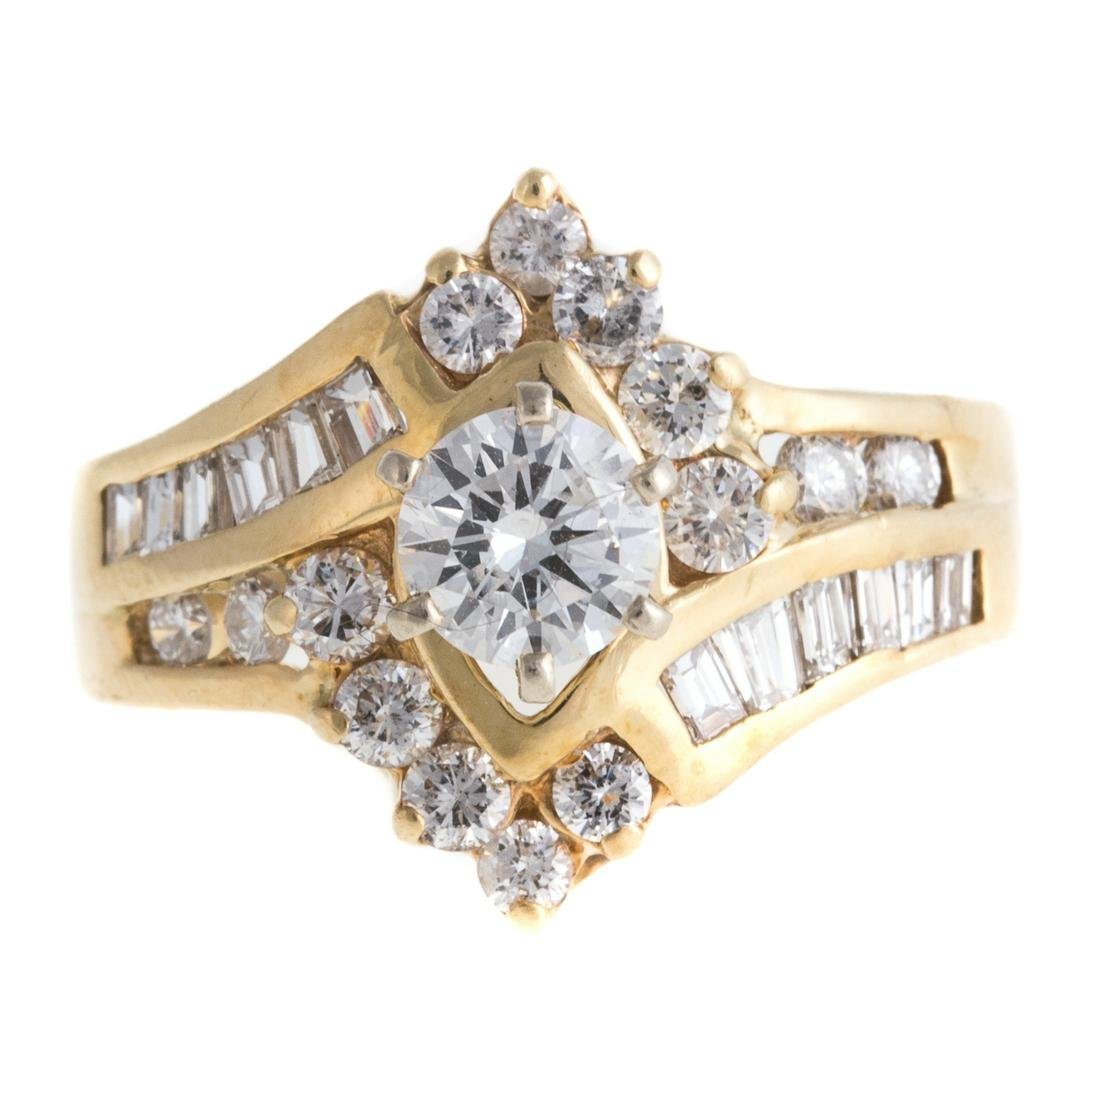 A Ladies Diamond Engagement Ring in 14K